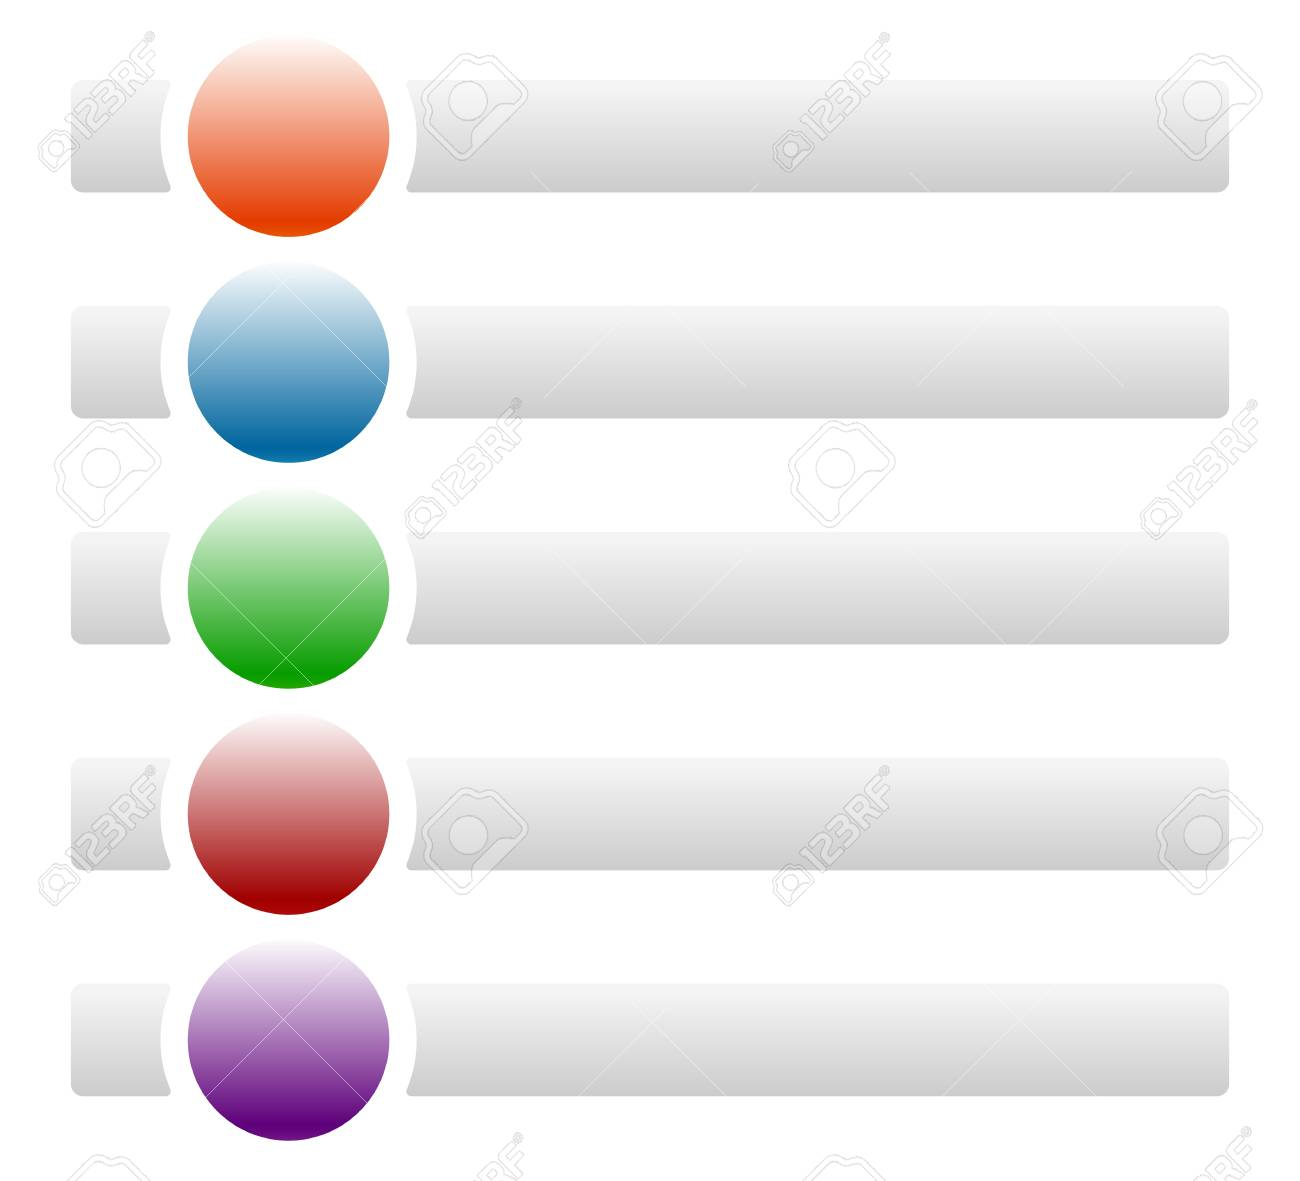 Banners Buttons With Circles For Messages With Symbols Icons